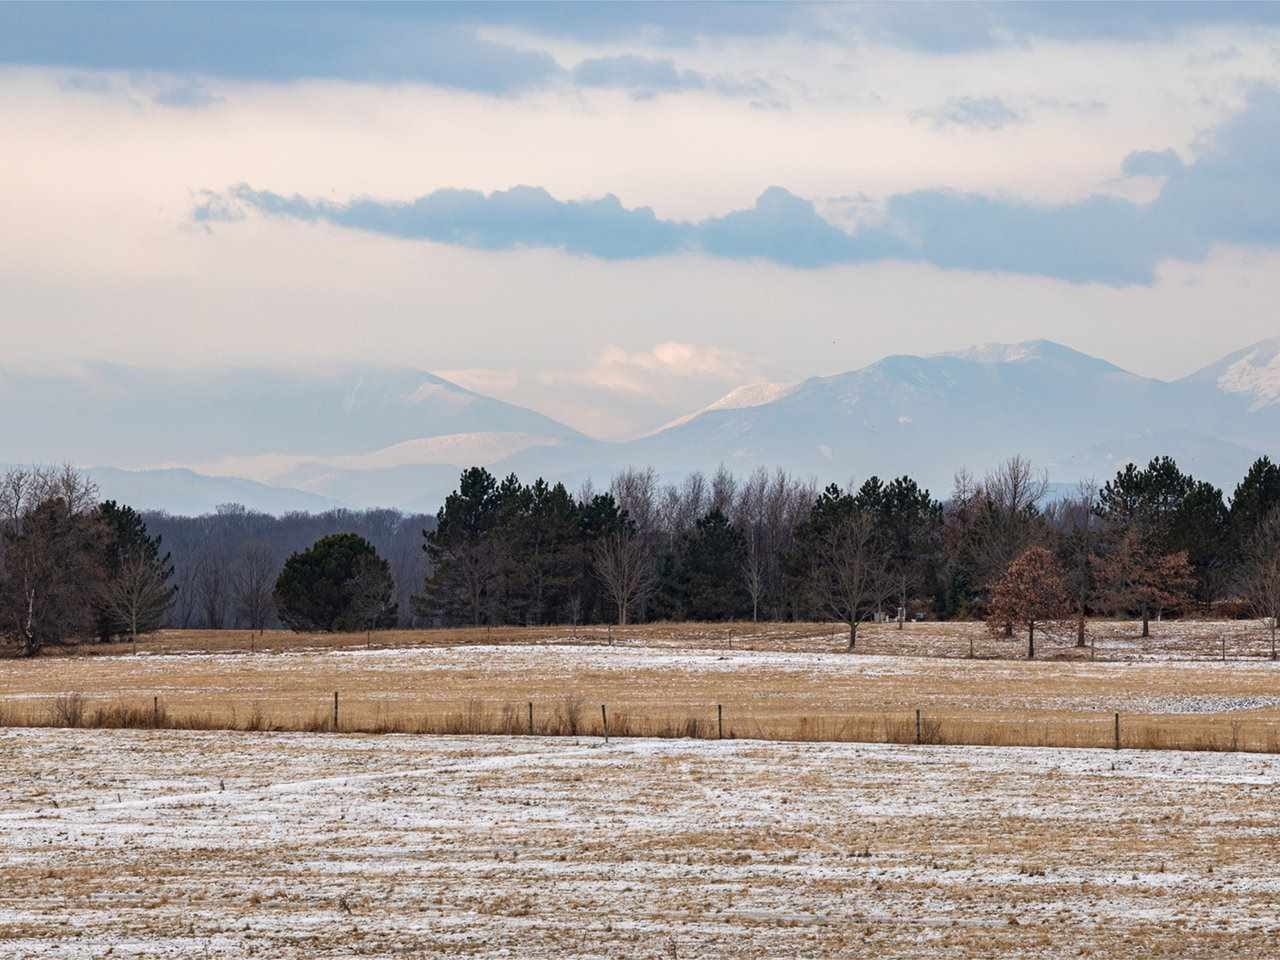 Lovely 124 acre parcel with westerly Adirondack views in northern Charlotte near lake and Shelburne Village. This parcel is comprised of approximately 40 acres of forested land and approximately 84 of open, rolling agricultural land. Dramatic mountain views from several areas. Land is currently partially fenced for cattle and has many possibilities for future use. A beautiful combination of rolling hills, woods and wide open pasturess. This location can't be beat with easy access to water and town and conserved land across the street. Perc testing completed shows soils for 5-10 wastewater systems and power and well are already on site. 20 minutes to Burlington, University of Vermont Medical Center and airport.